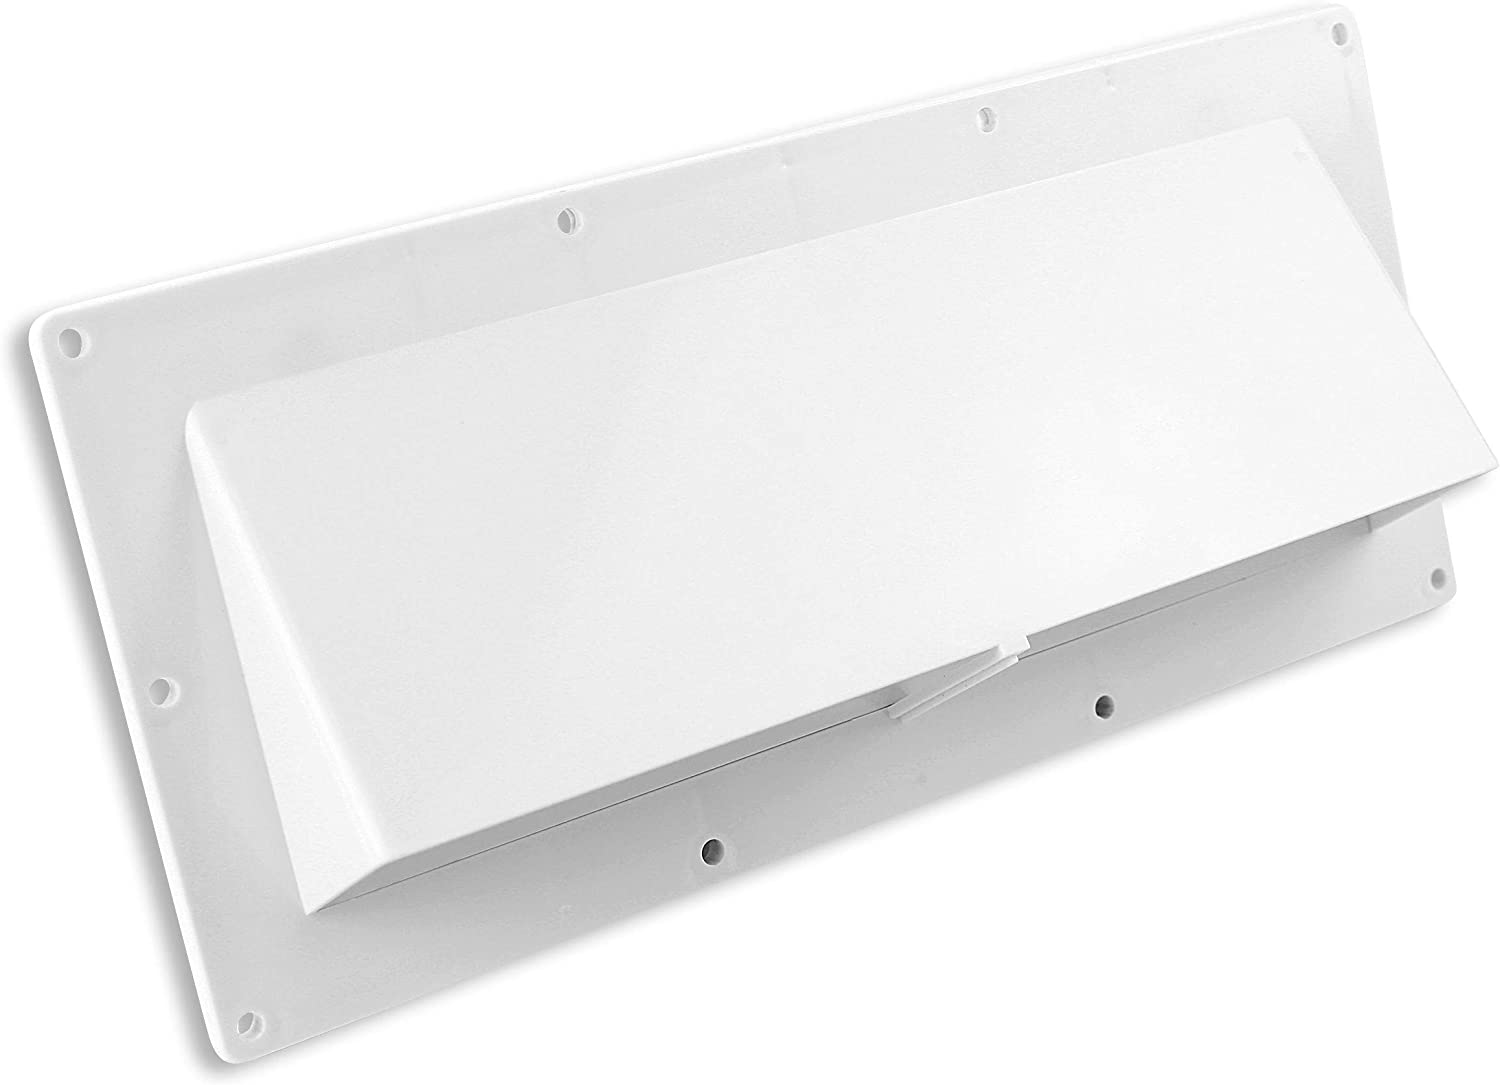 Leisure Coachworks RV Exhaust Vent Cover - RV Range Hood Vent/RV Range Hood Cover (1-Pack White)